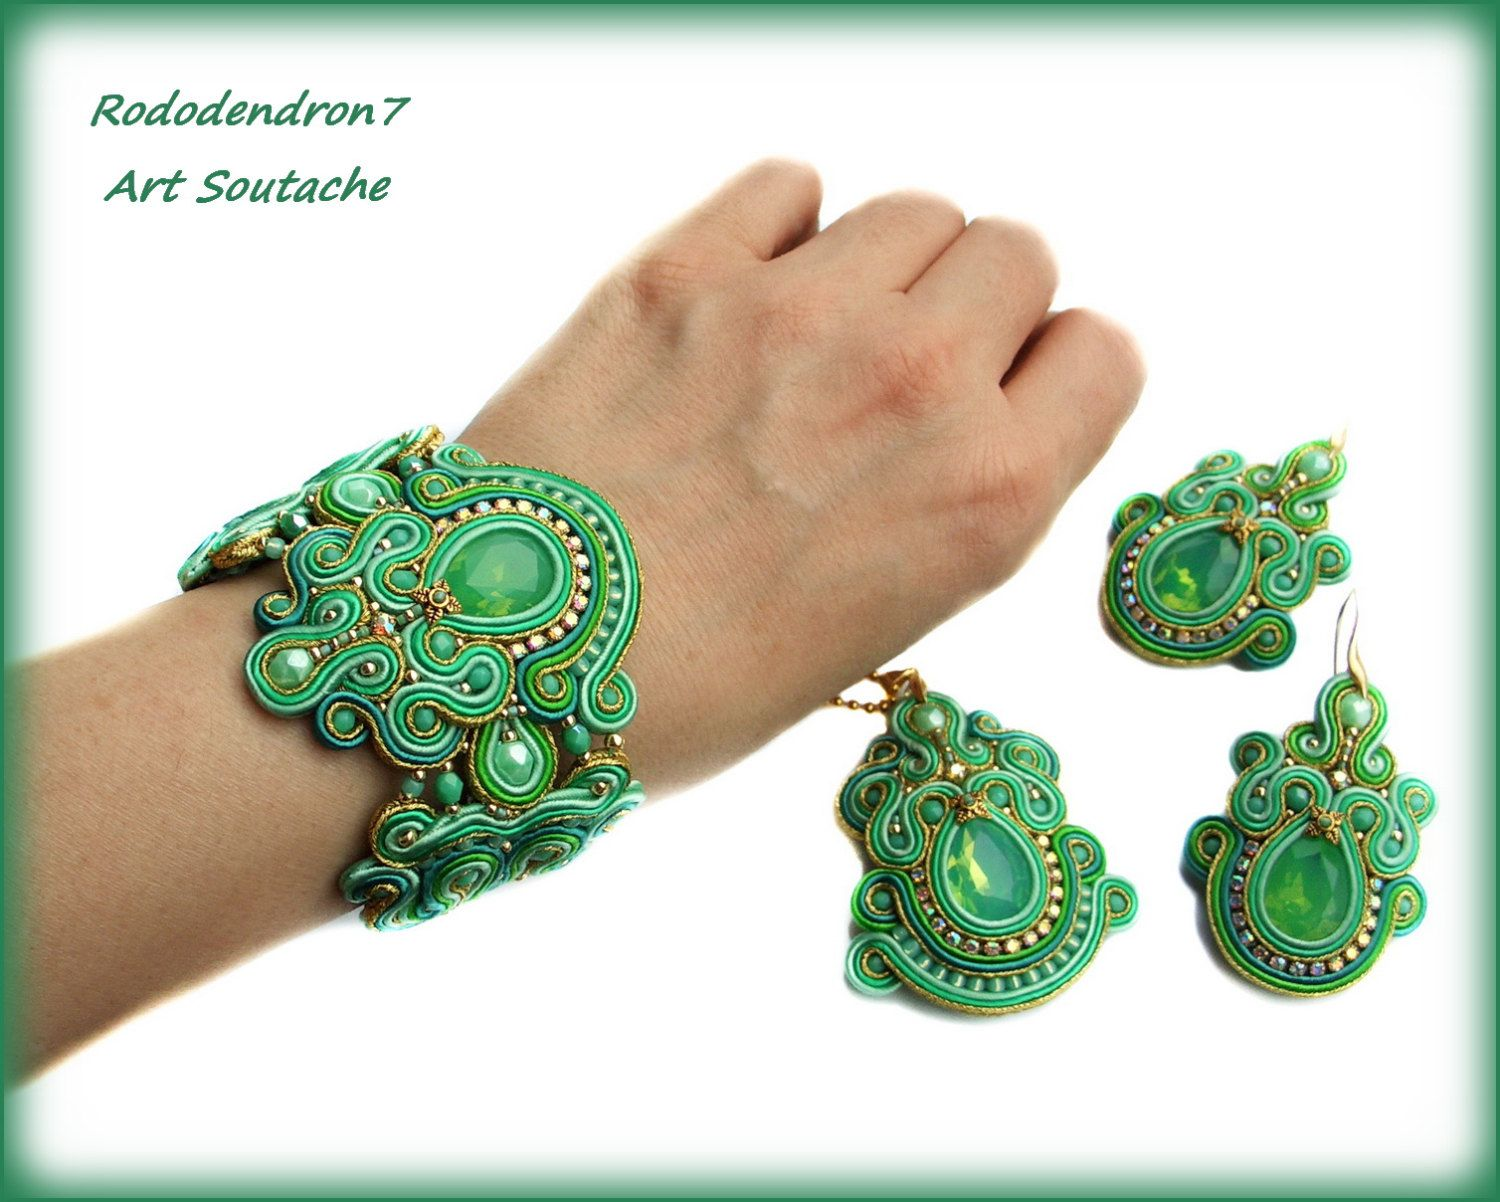 Soutache pendant very elegant eyecatching and by rododendron7